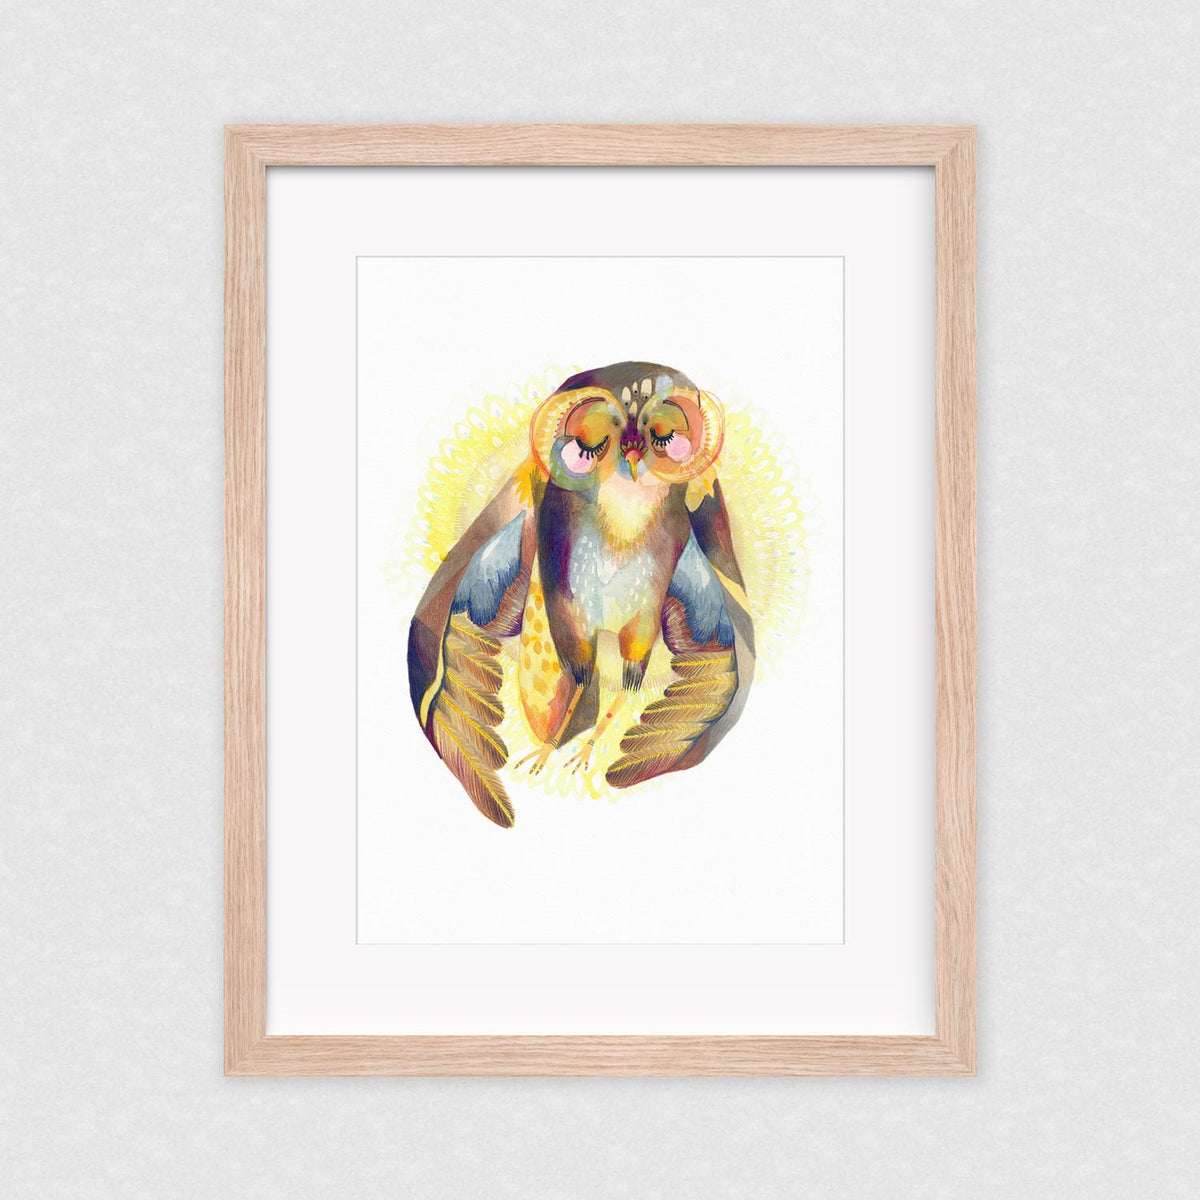 Let the Sun Shine In - Framed Limited Edition Print | by Natalie Martin - Framed Prints - Throw Some Seeds - Nature Inspired Gifts for the Home & Garden